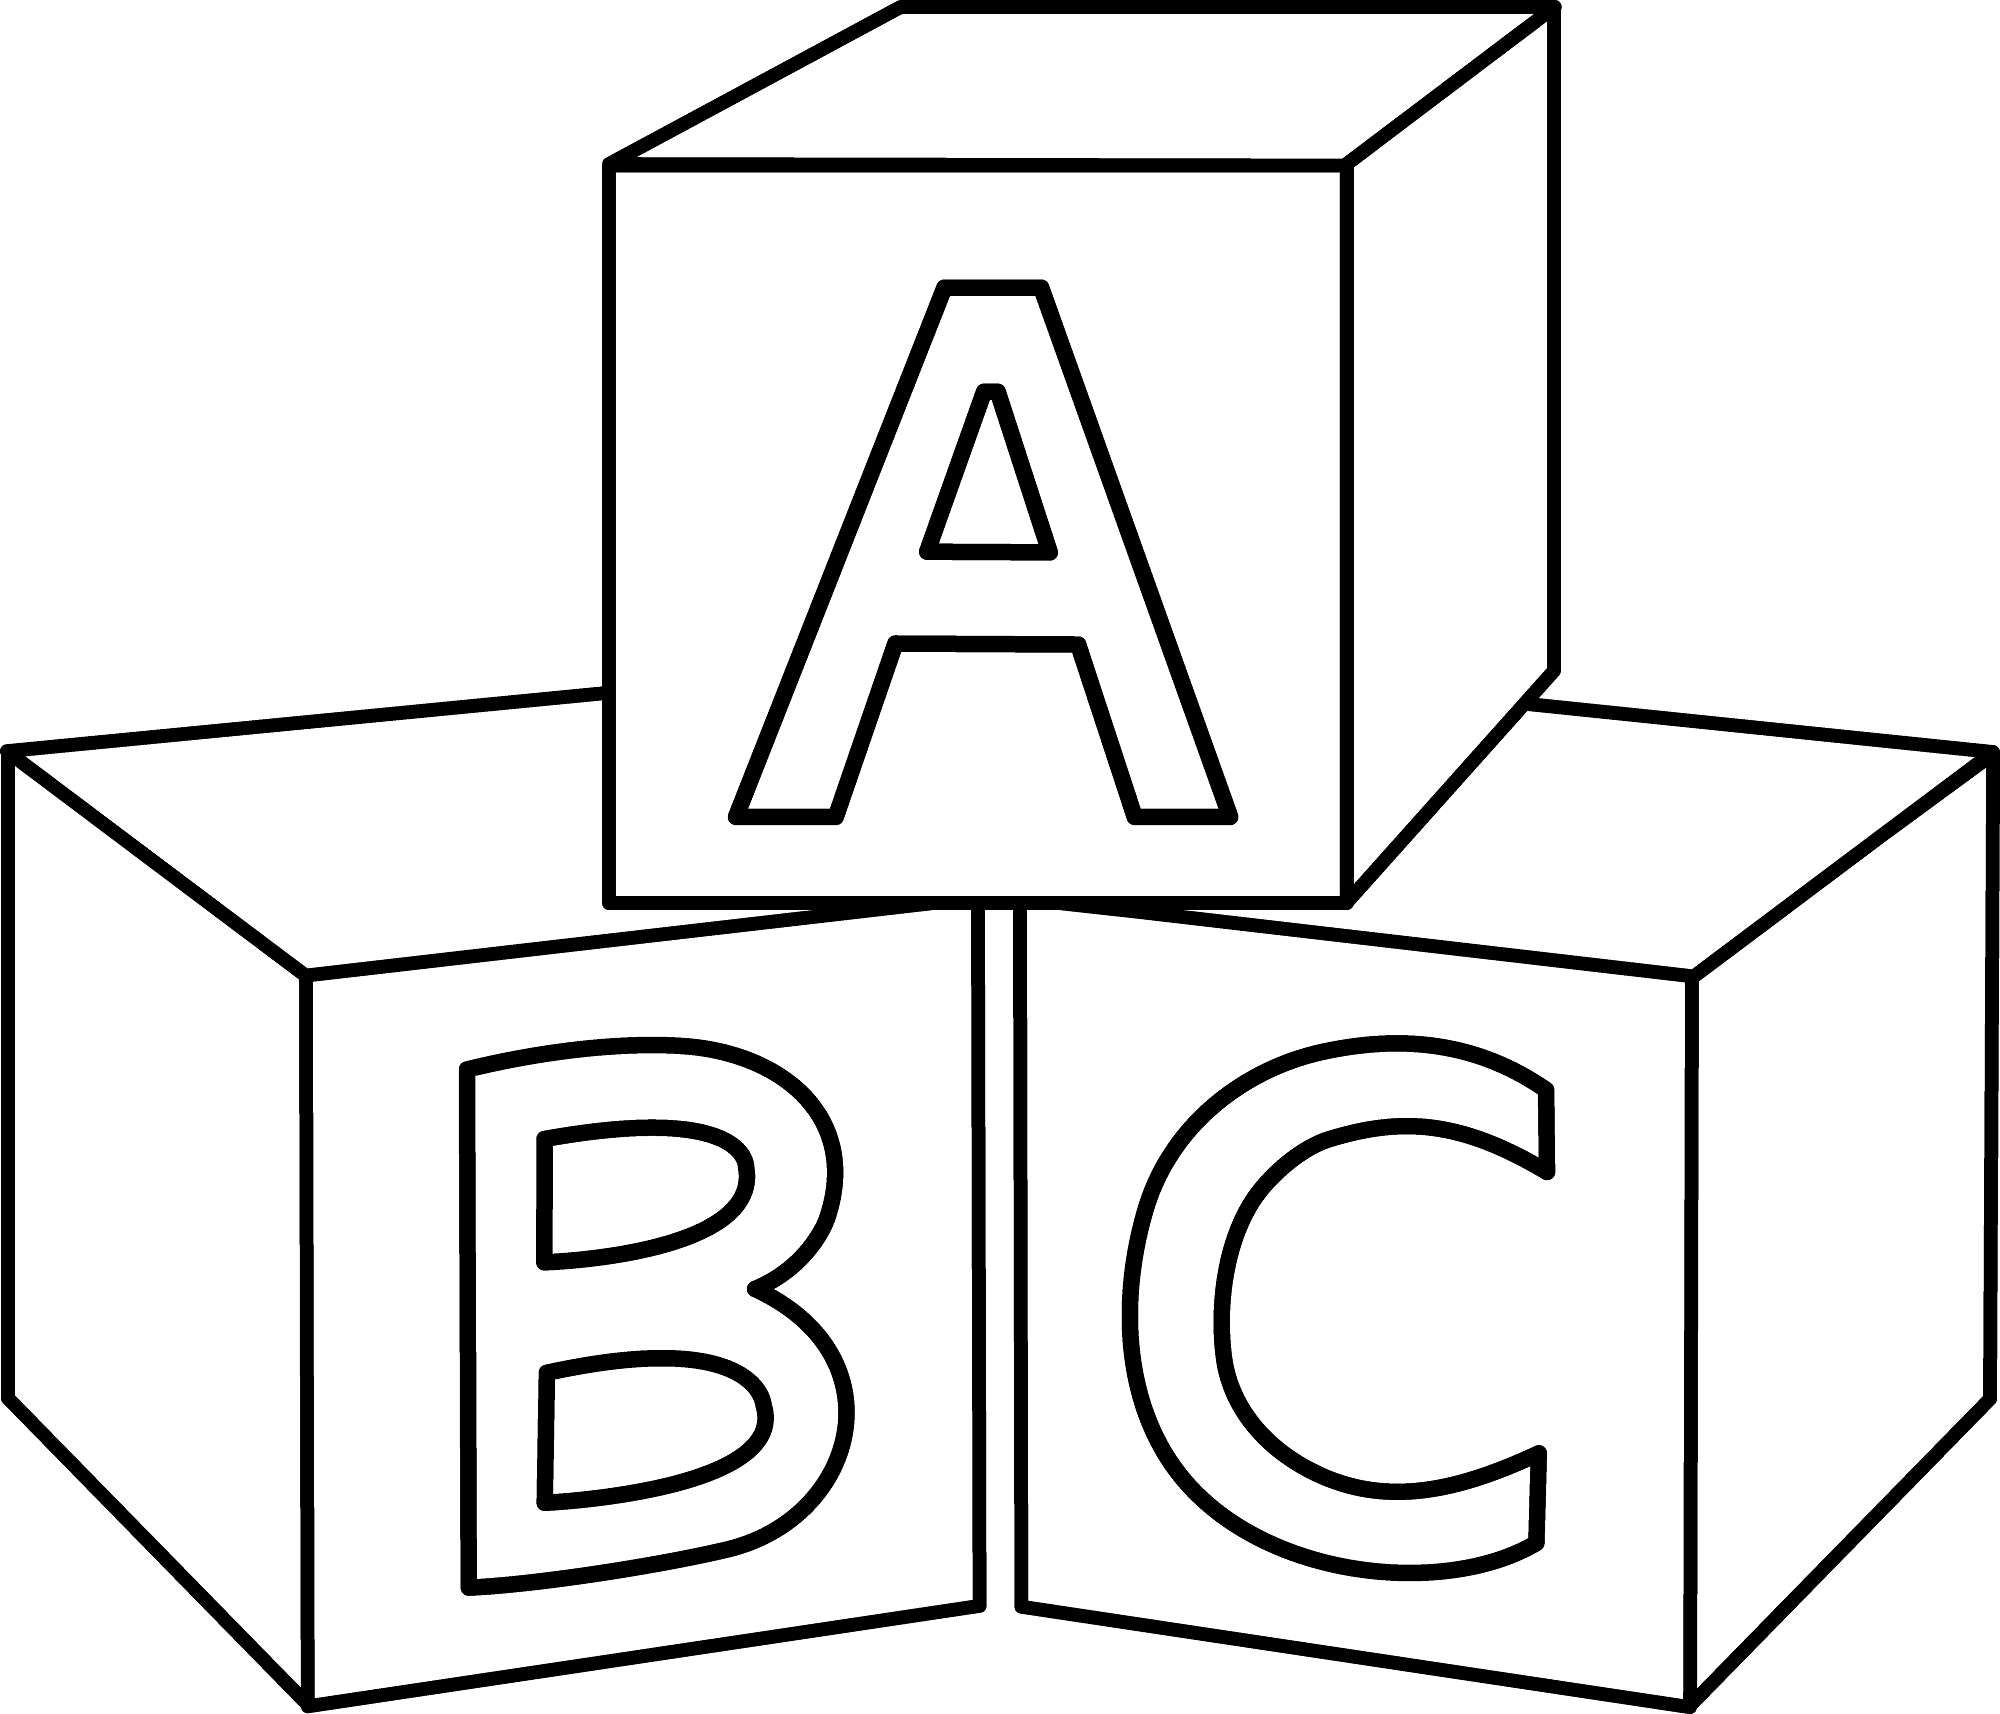 Free Abc Worksheets To Print Abc Blocks Abc Coloring Pages Coloring Pages For Kids